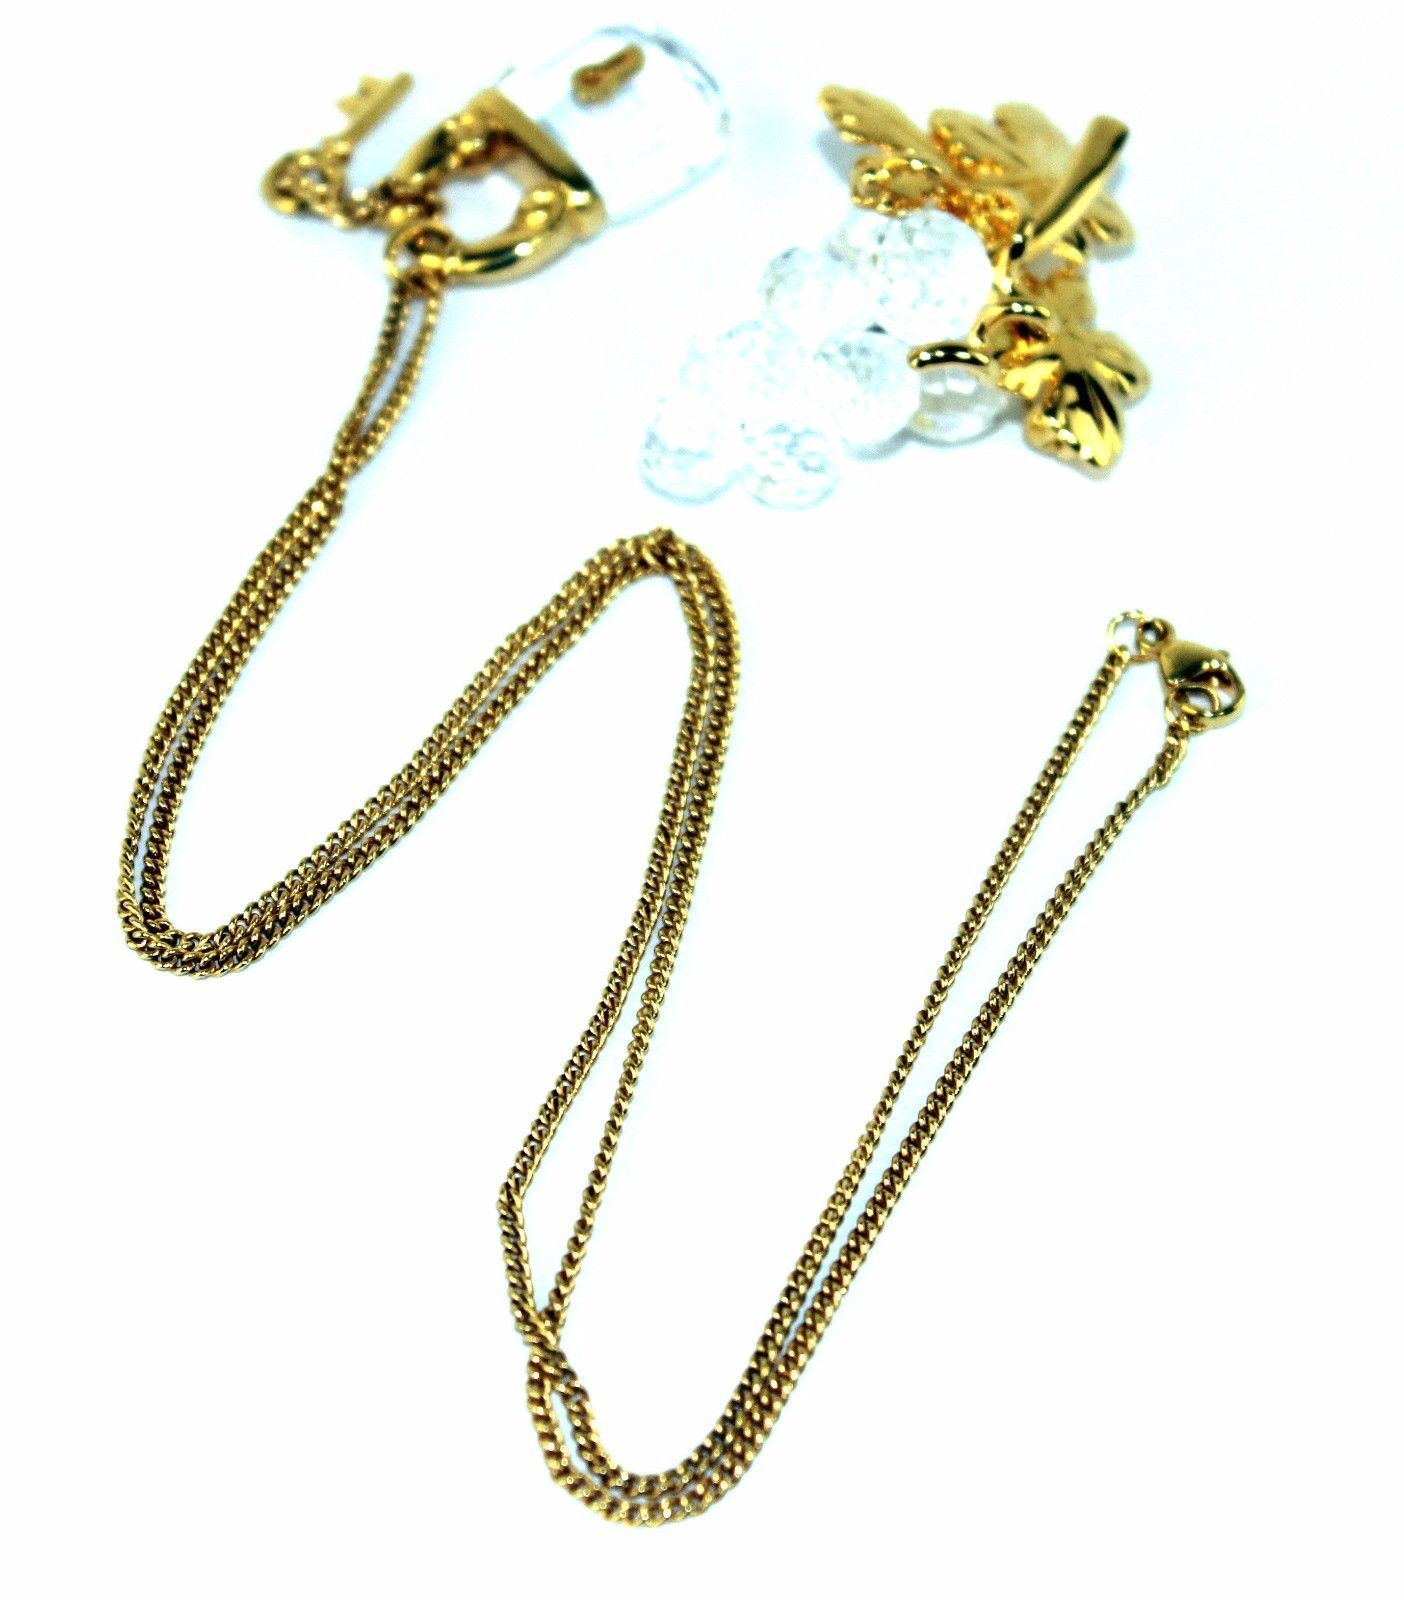 Auth Swarovski Gold Tone & Crystal Lock Pendant Chain Necklace W/ Brooch Unused image 4